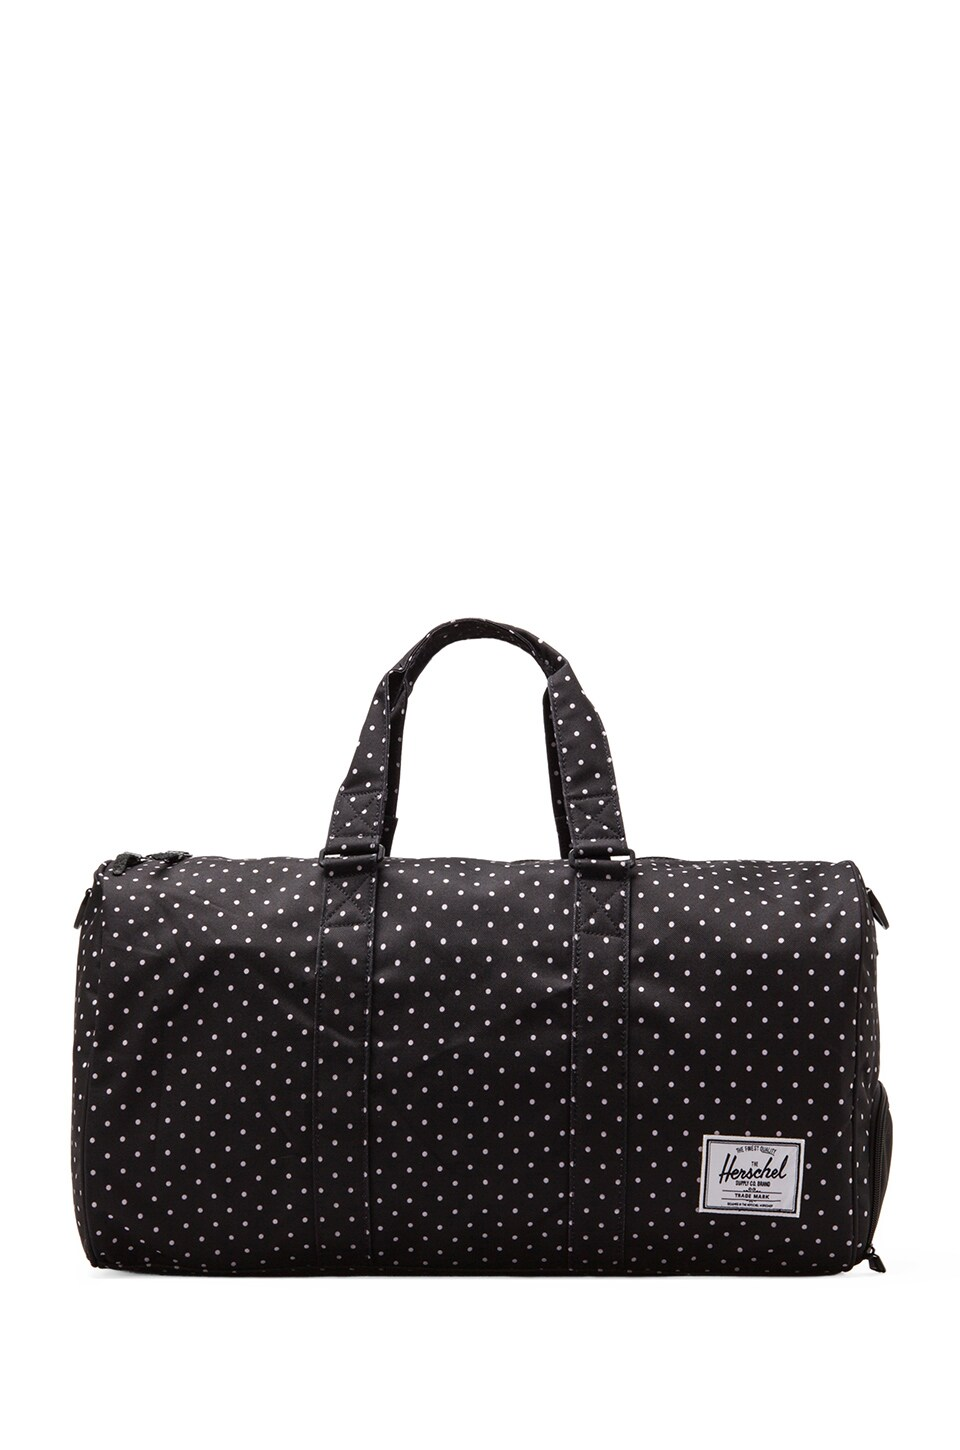 Herschel Supply Co. Novel Polka Dot Duffle in Black/ White